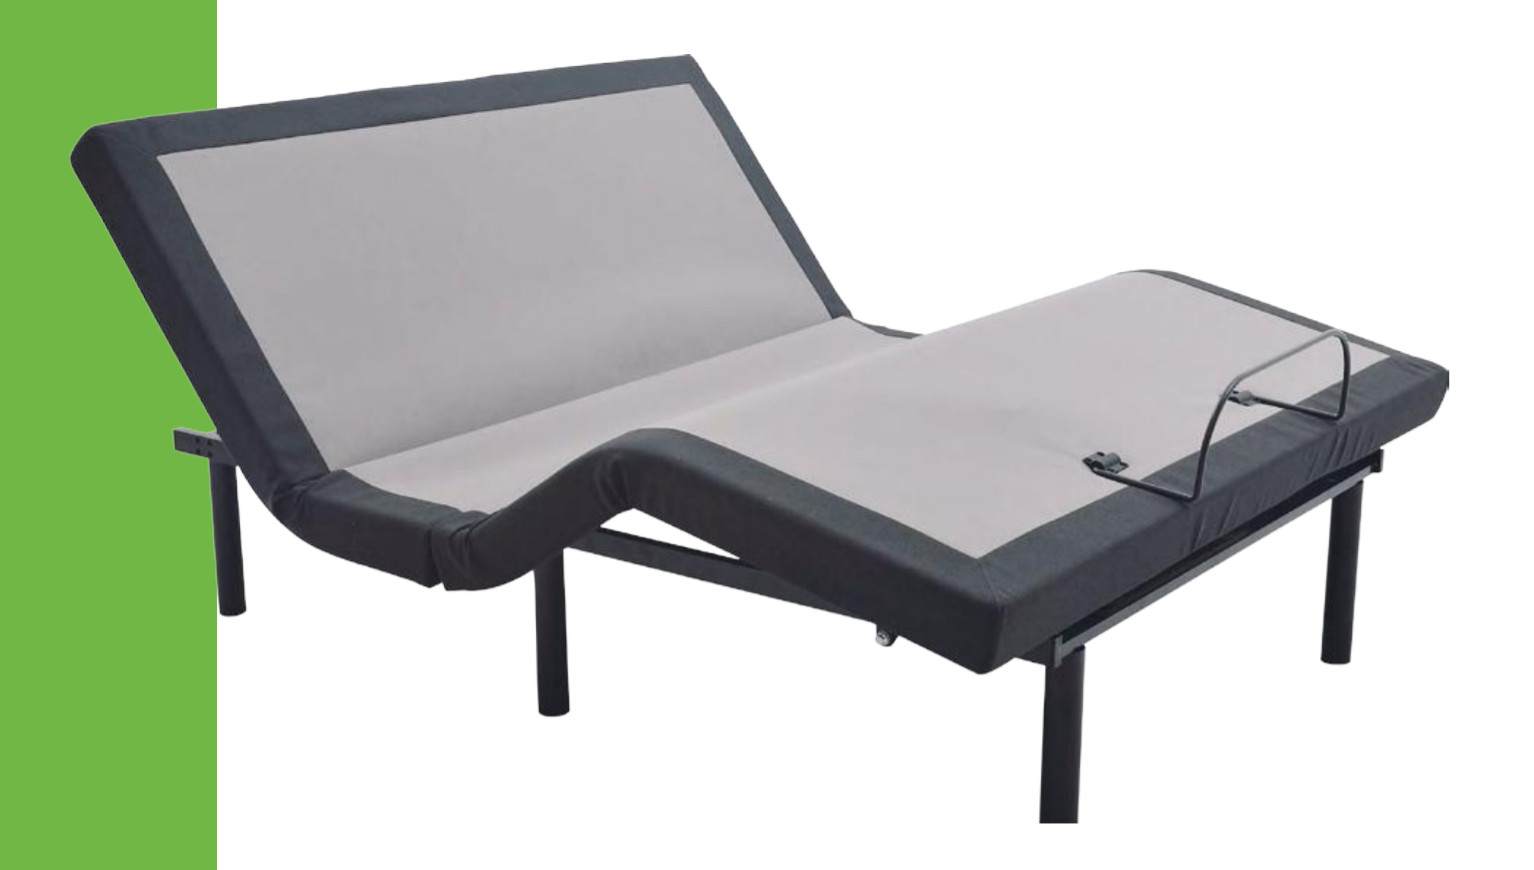 ghostbed mattresses that work for an adjustable base